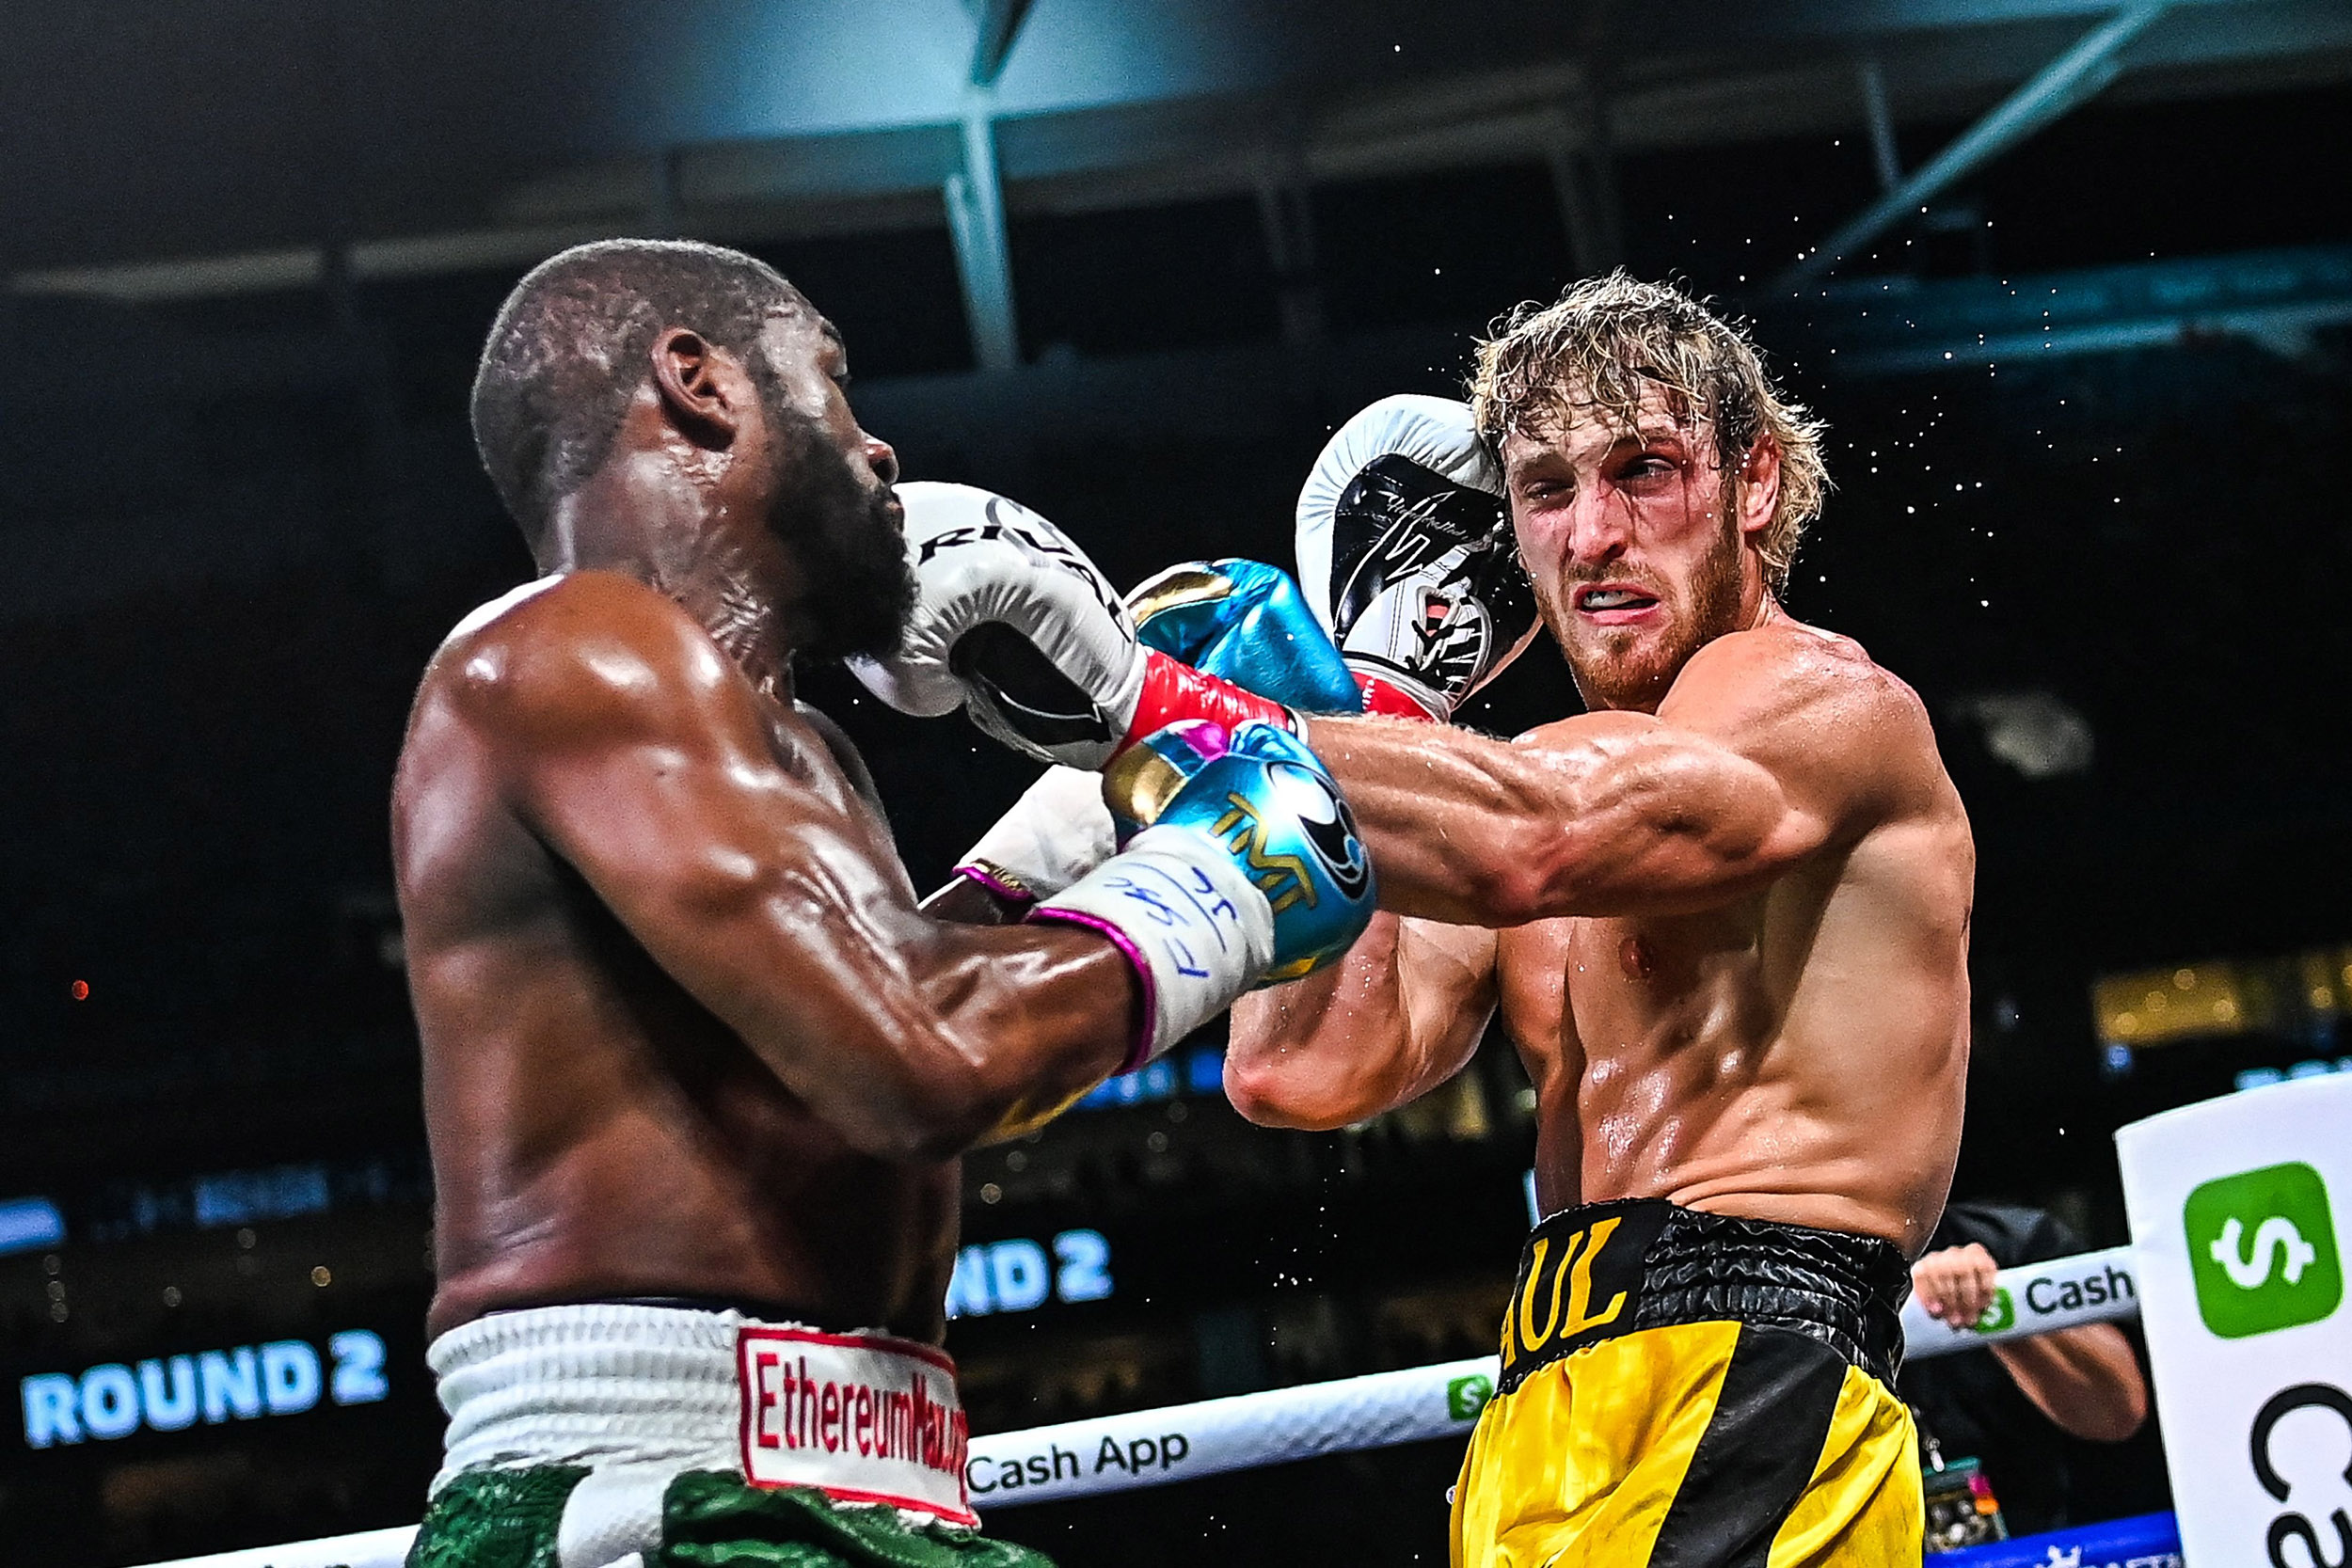 YouTuber Logan Paul goes distance against Mayweather in boxing exhibition